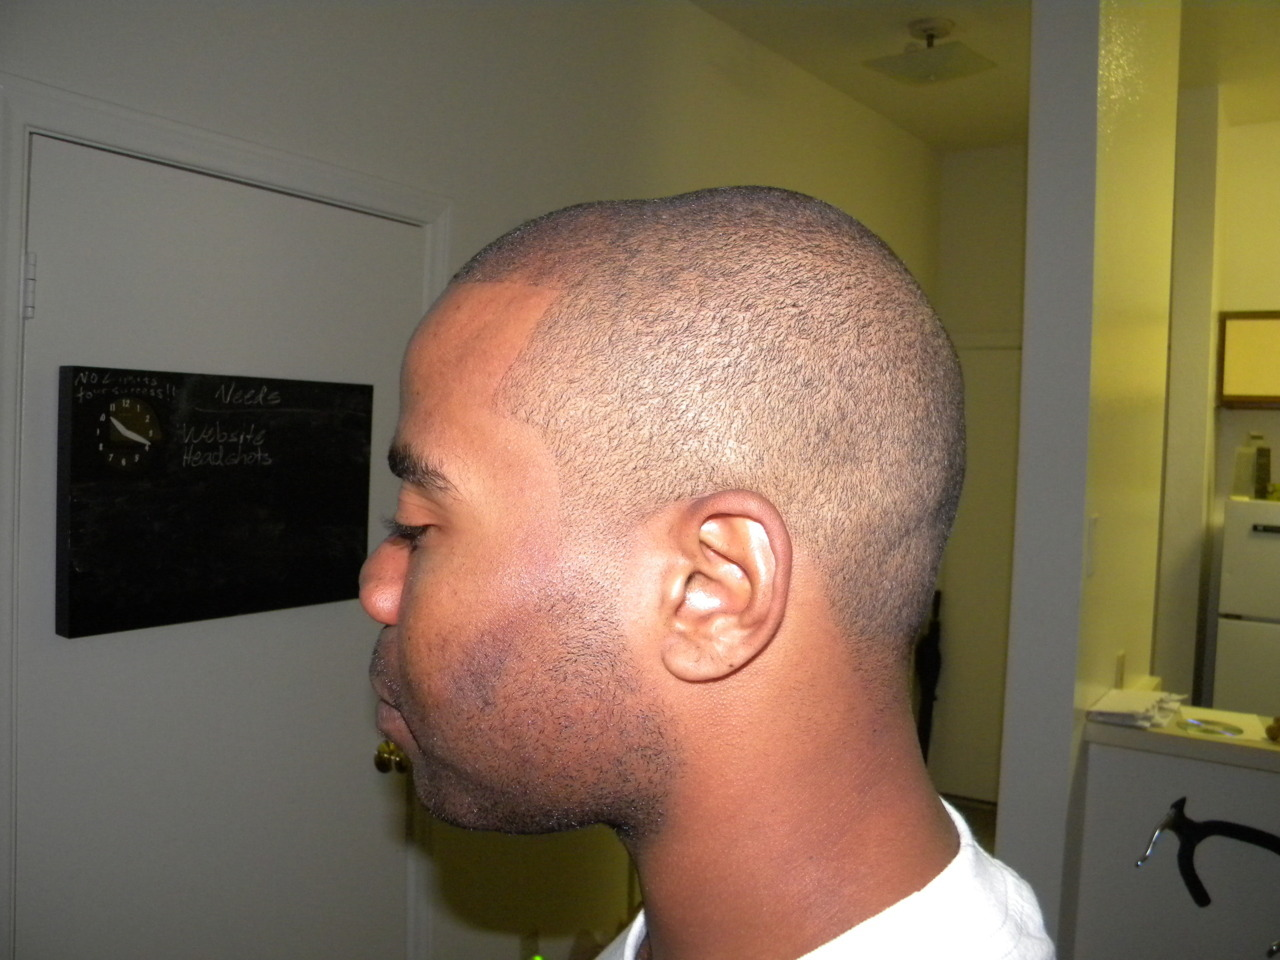 Gave my friend & client, Casey Washington, a fresh haircut…….now he's camera ready! Remember this face and this cut, you'll be seeing it soon on Fox's The Finder tv series. His episode is also guest starring 50 Cent.  I got one of my cuts on tv…..and there's more to come!!!